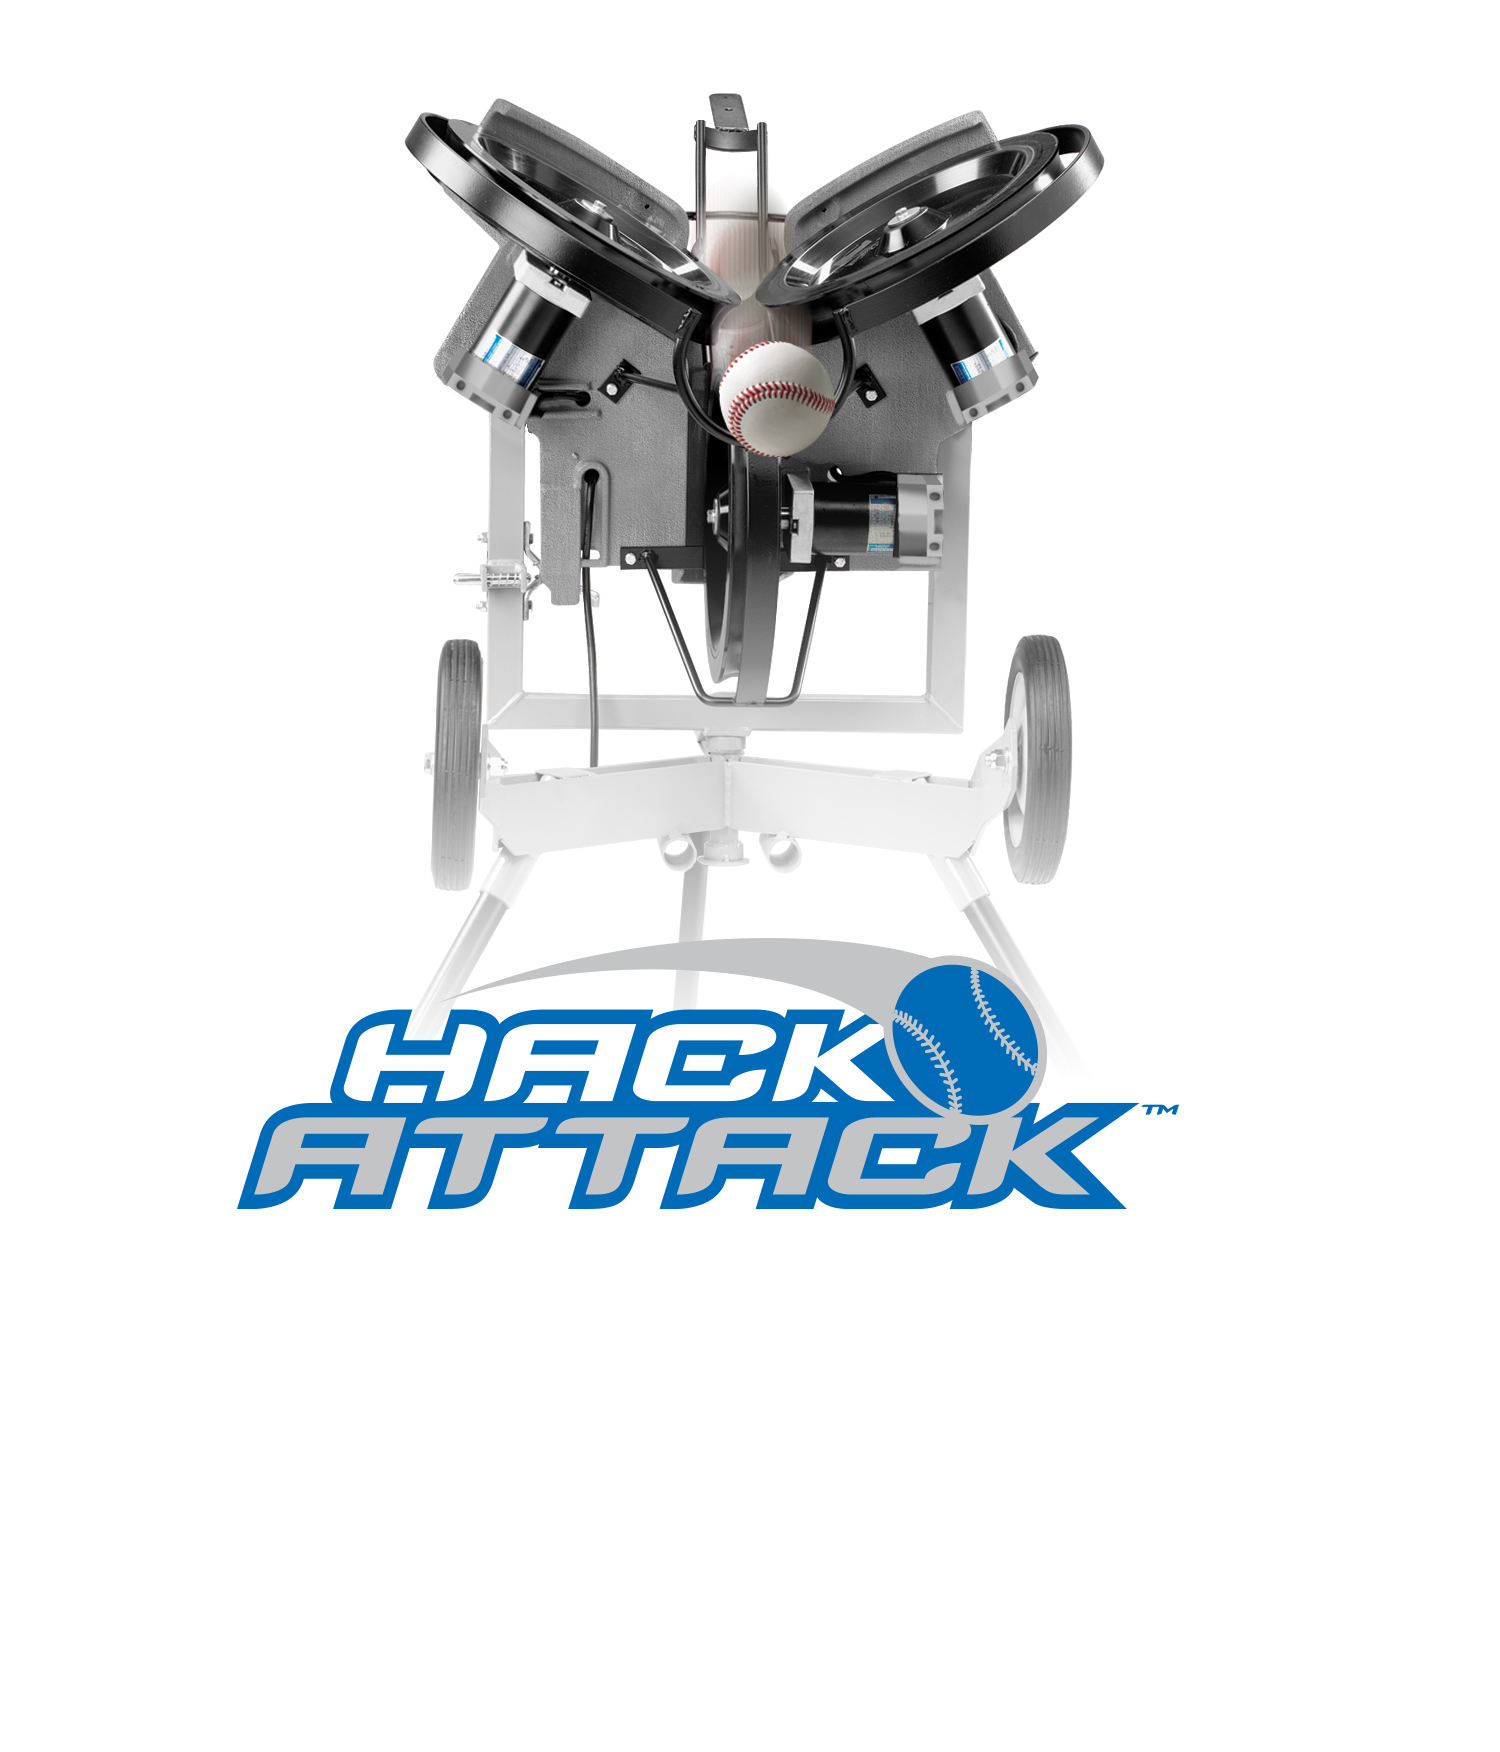 Hack Attack Baseball Pitching Machine